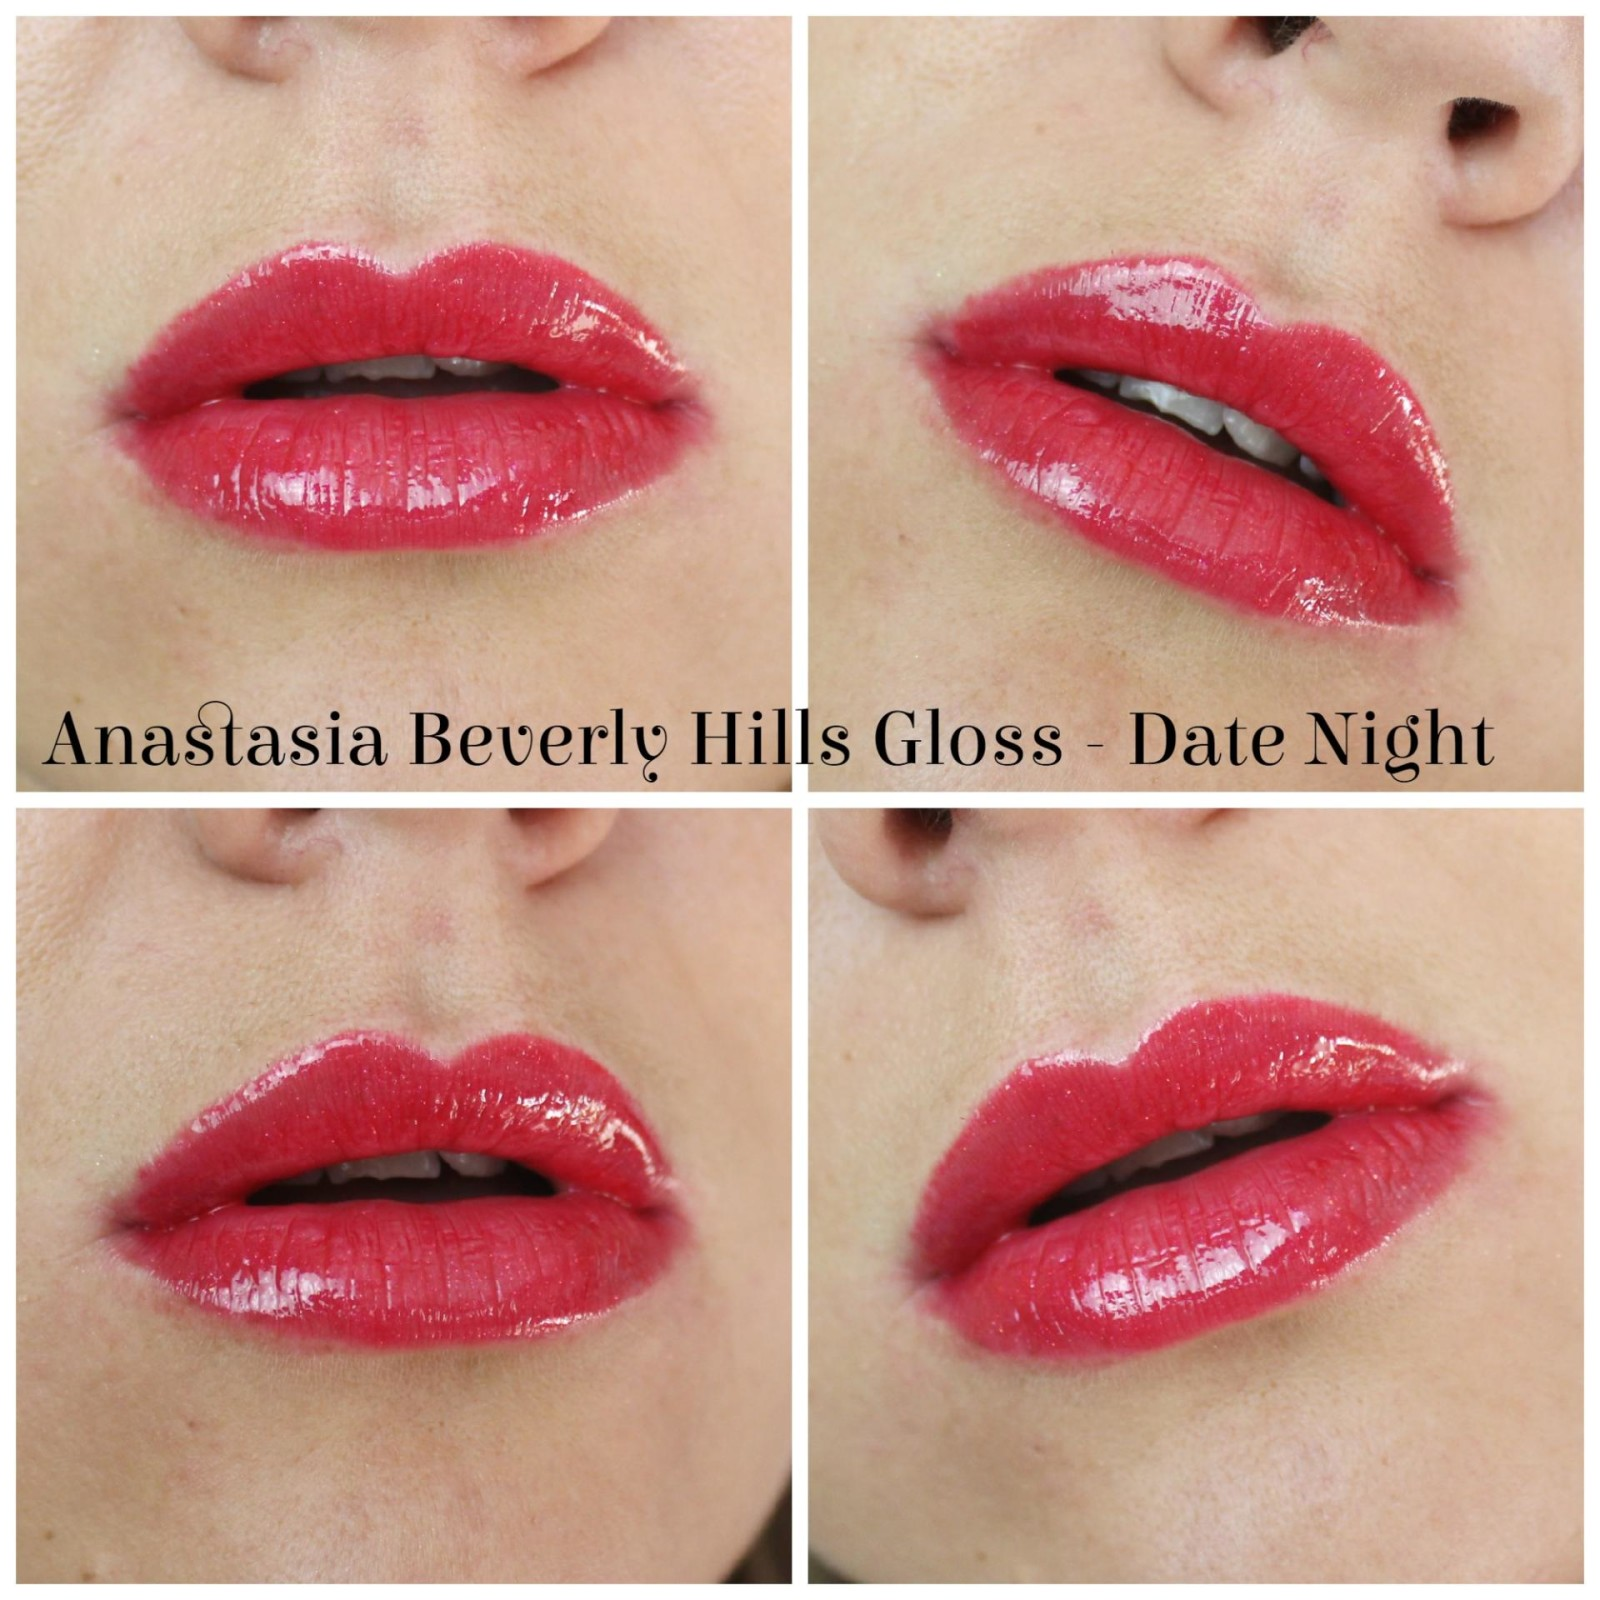 Anastasia Beverly Hills Lustrous Lip Gloss Set Date Night